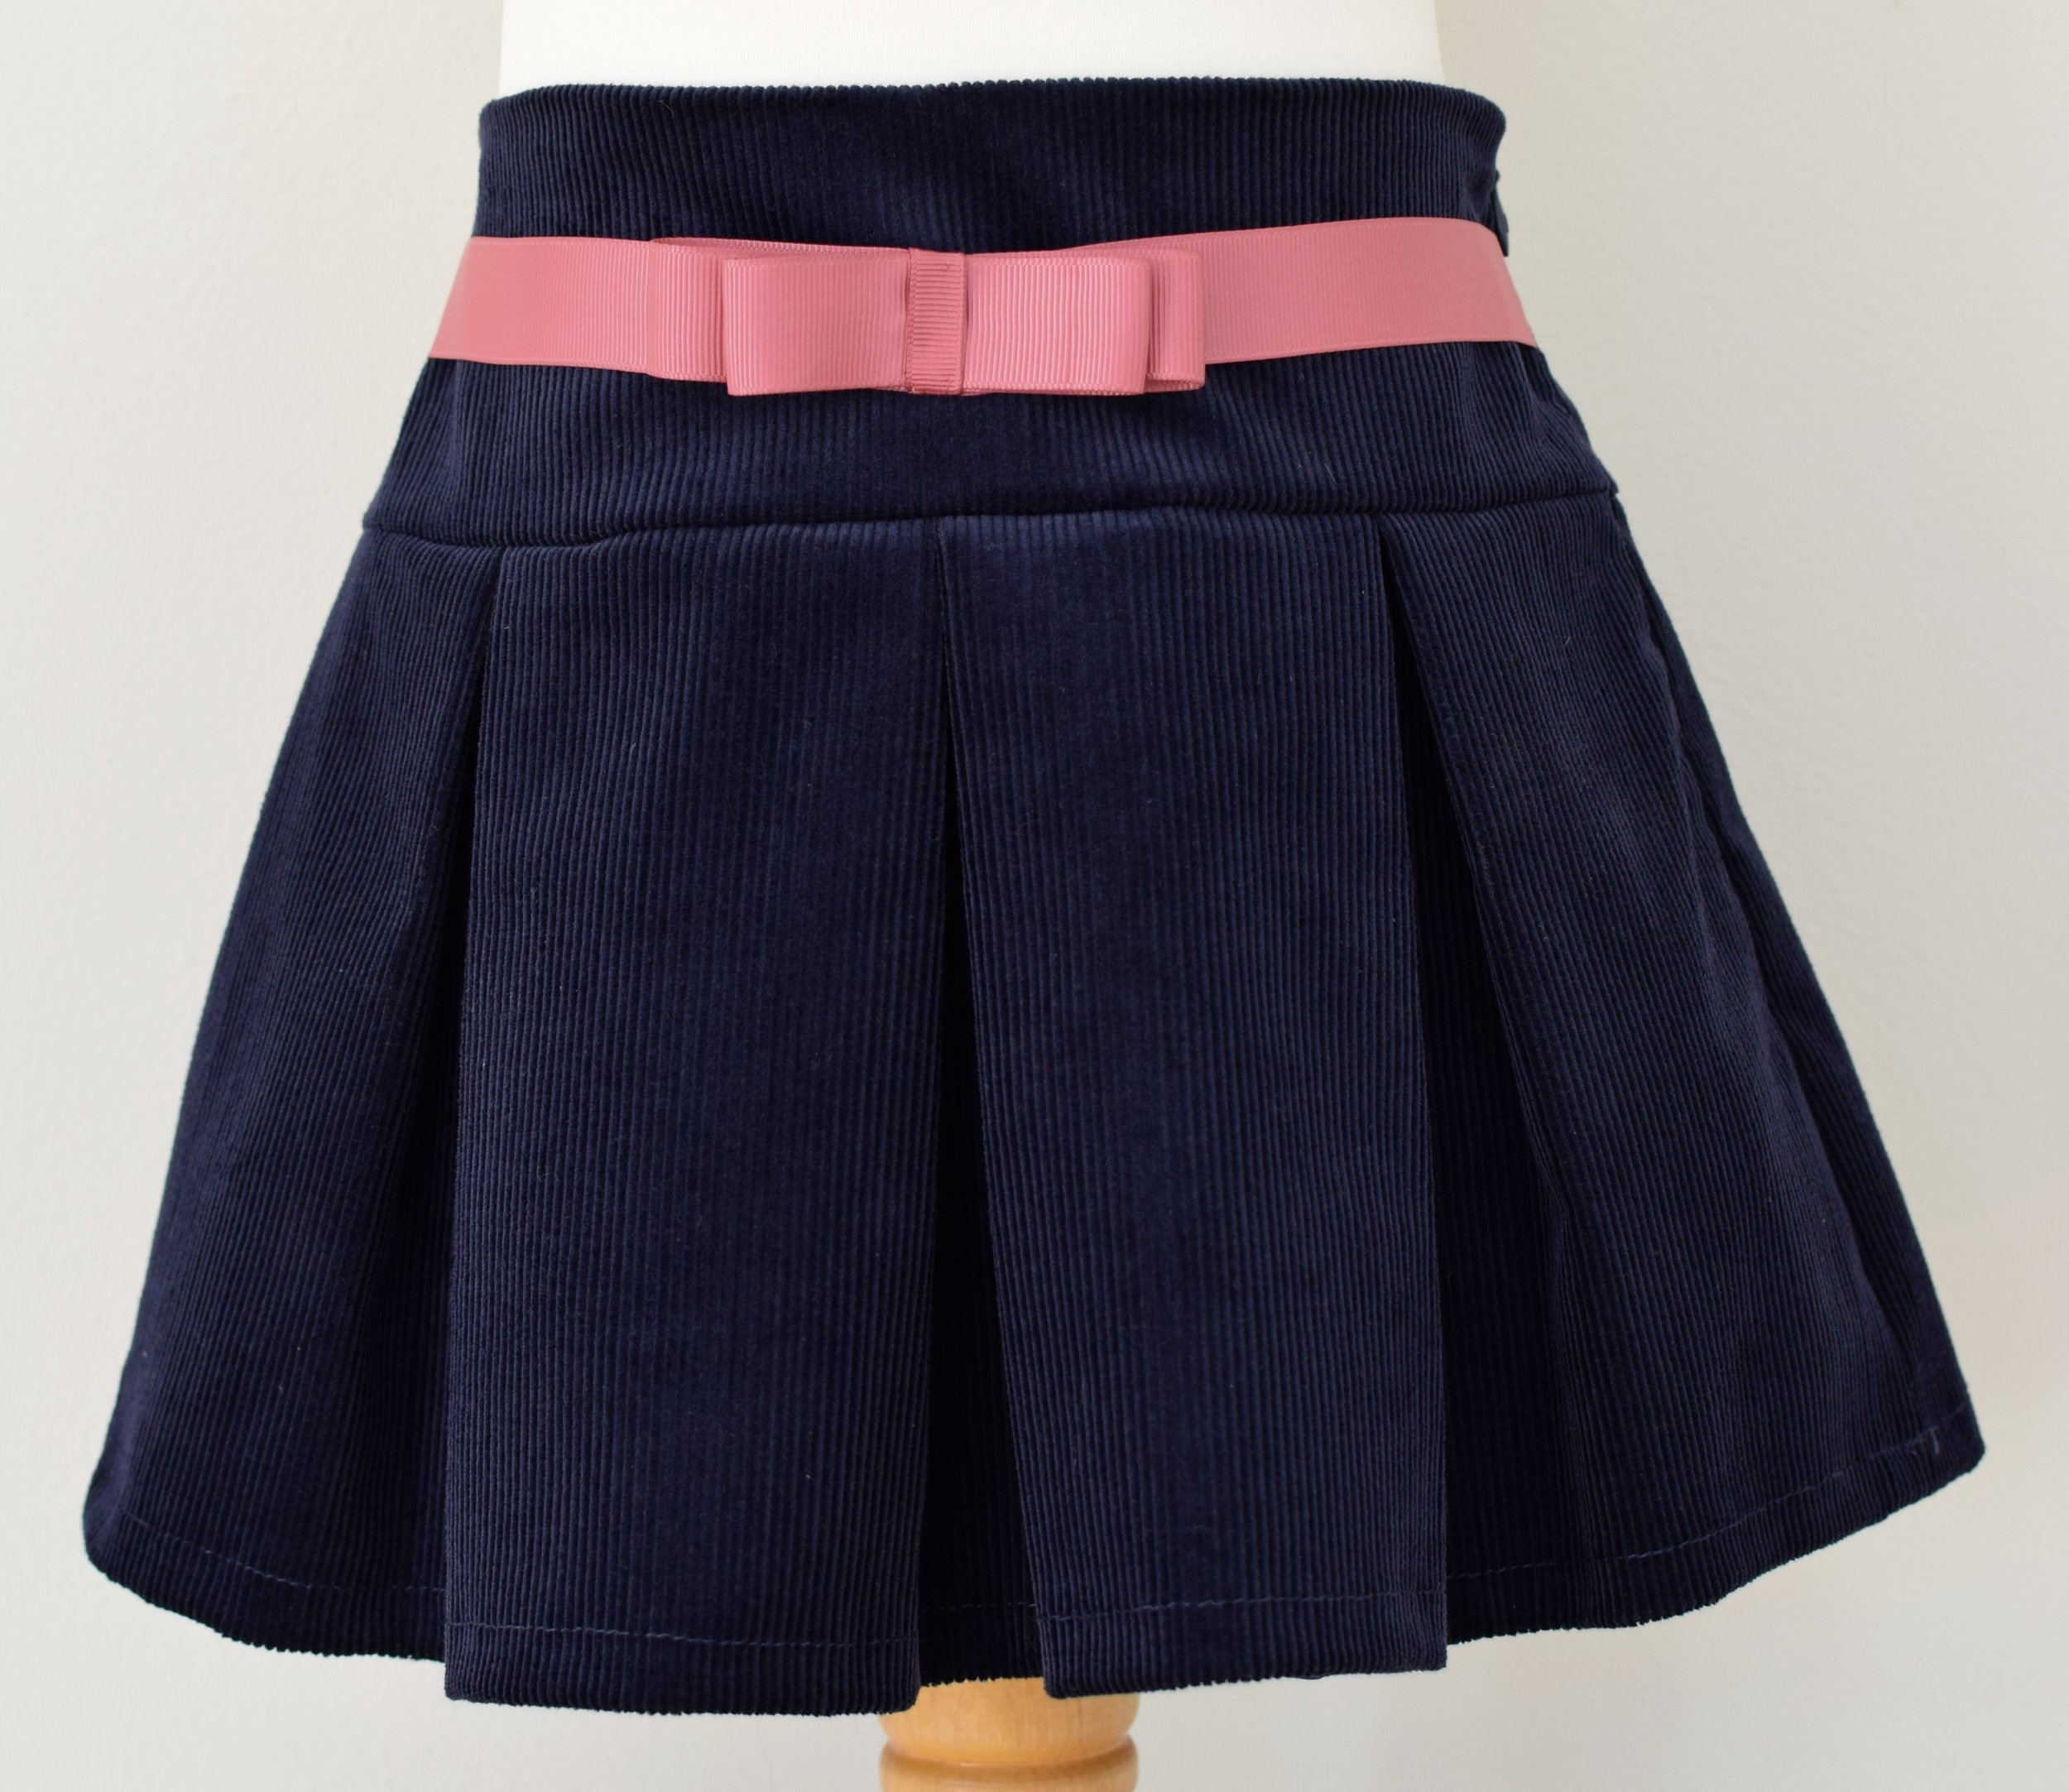 Navy corduroy skirt   Description: pretty pleats front and back, contrasting grosgrain ribbon bow, concealed zip at side, adjustable elastic waist  Sizes: available in 4y, 5y and 6y   From £32